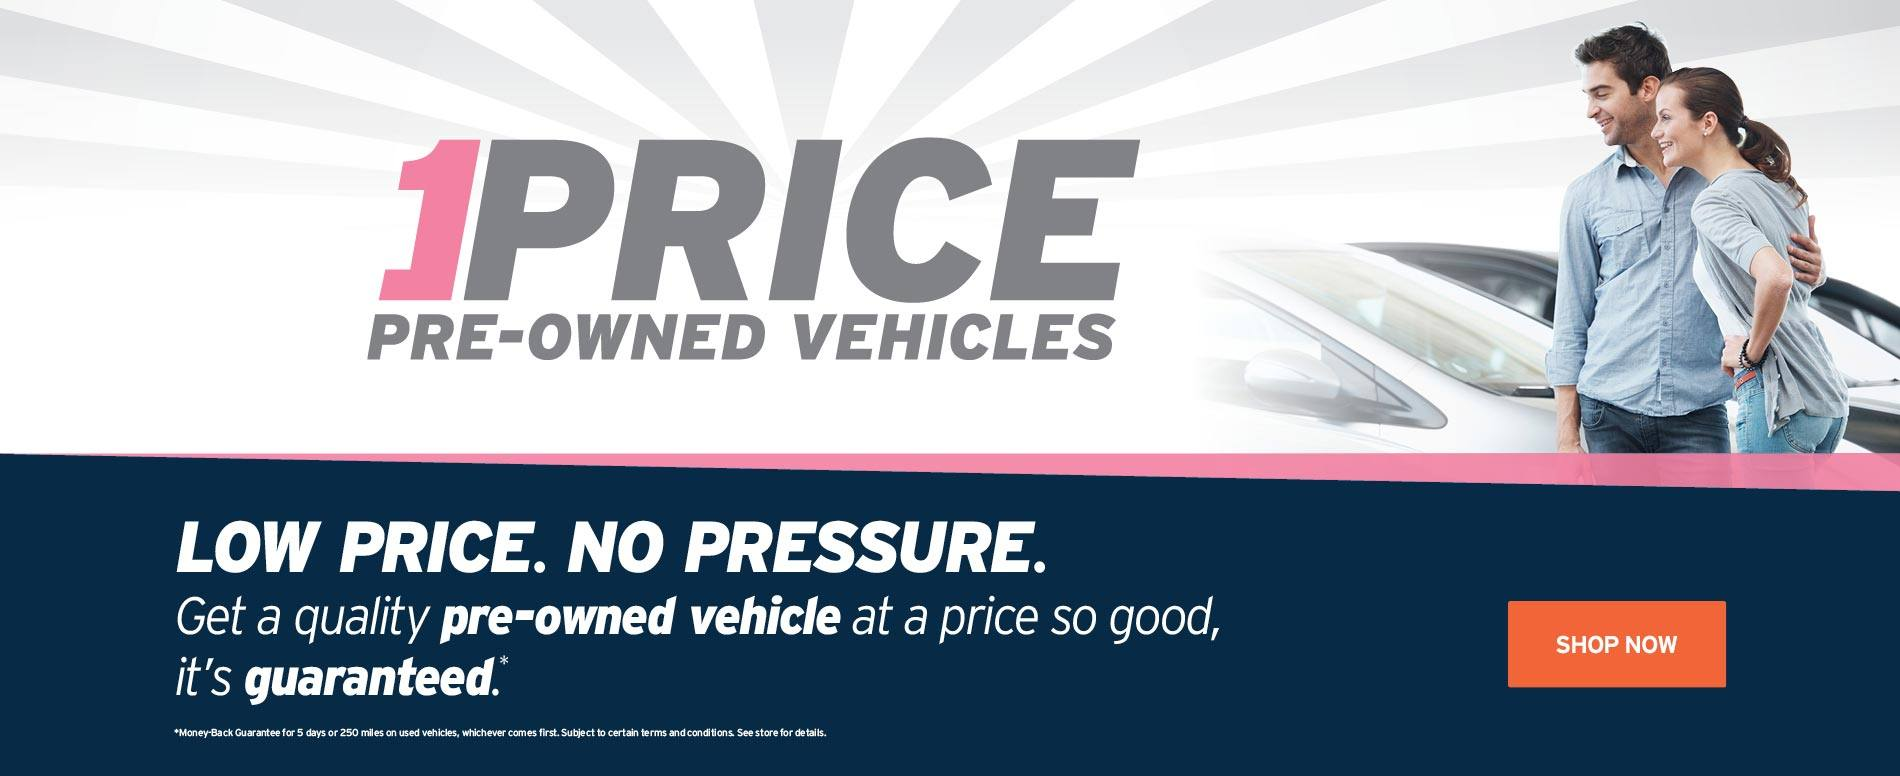 AutoNation 1Price Pre-Owned Vehicles